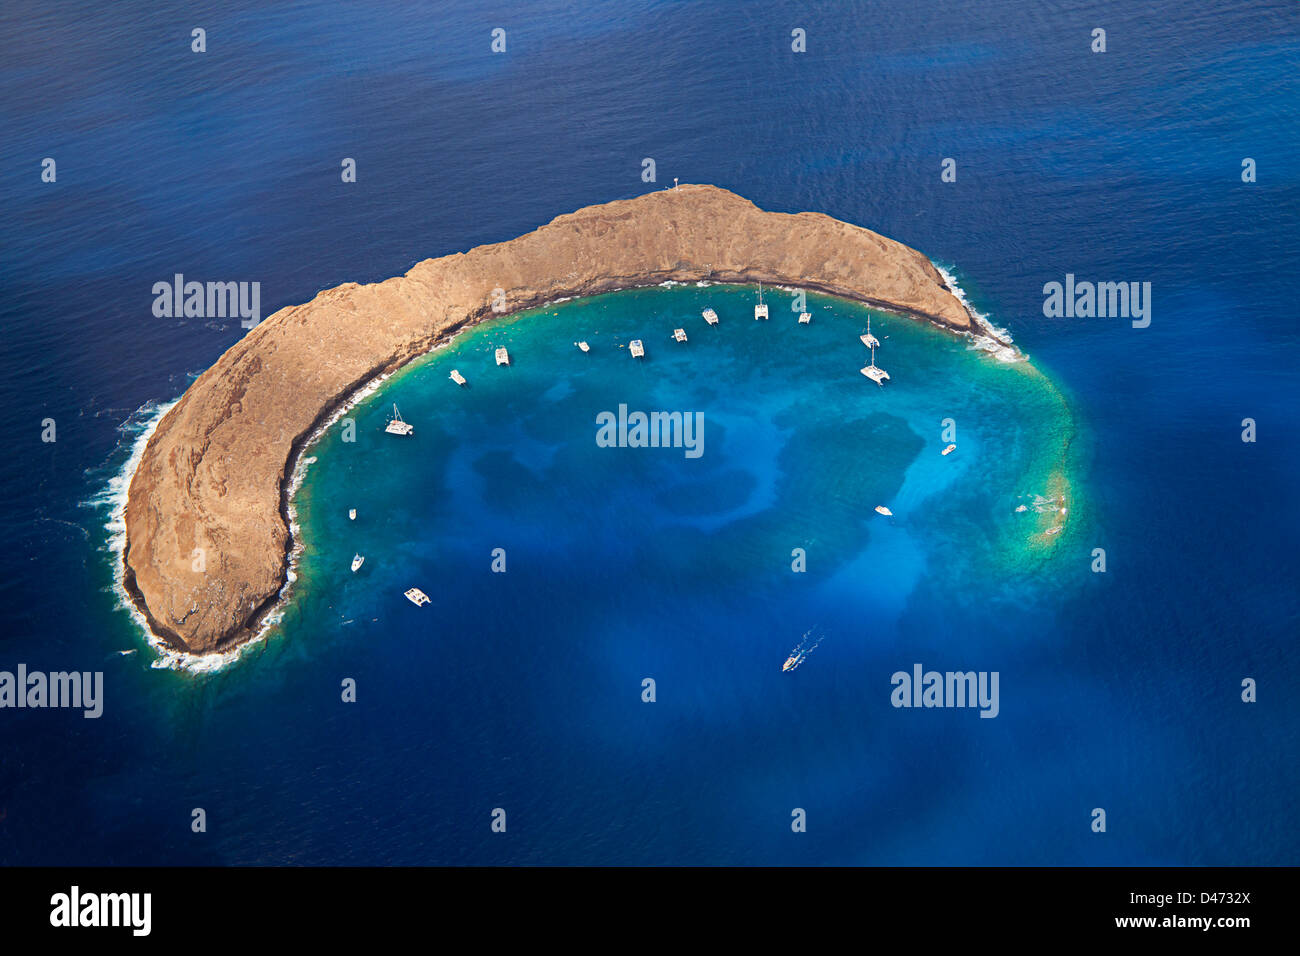 Molokini Crater, aerial shot of the crescent shaped islet at mid-morning with charter boats, Maui, Hawaii. - Stock Image